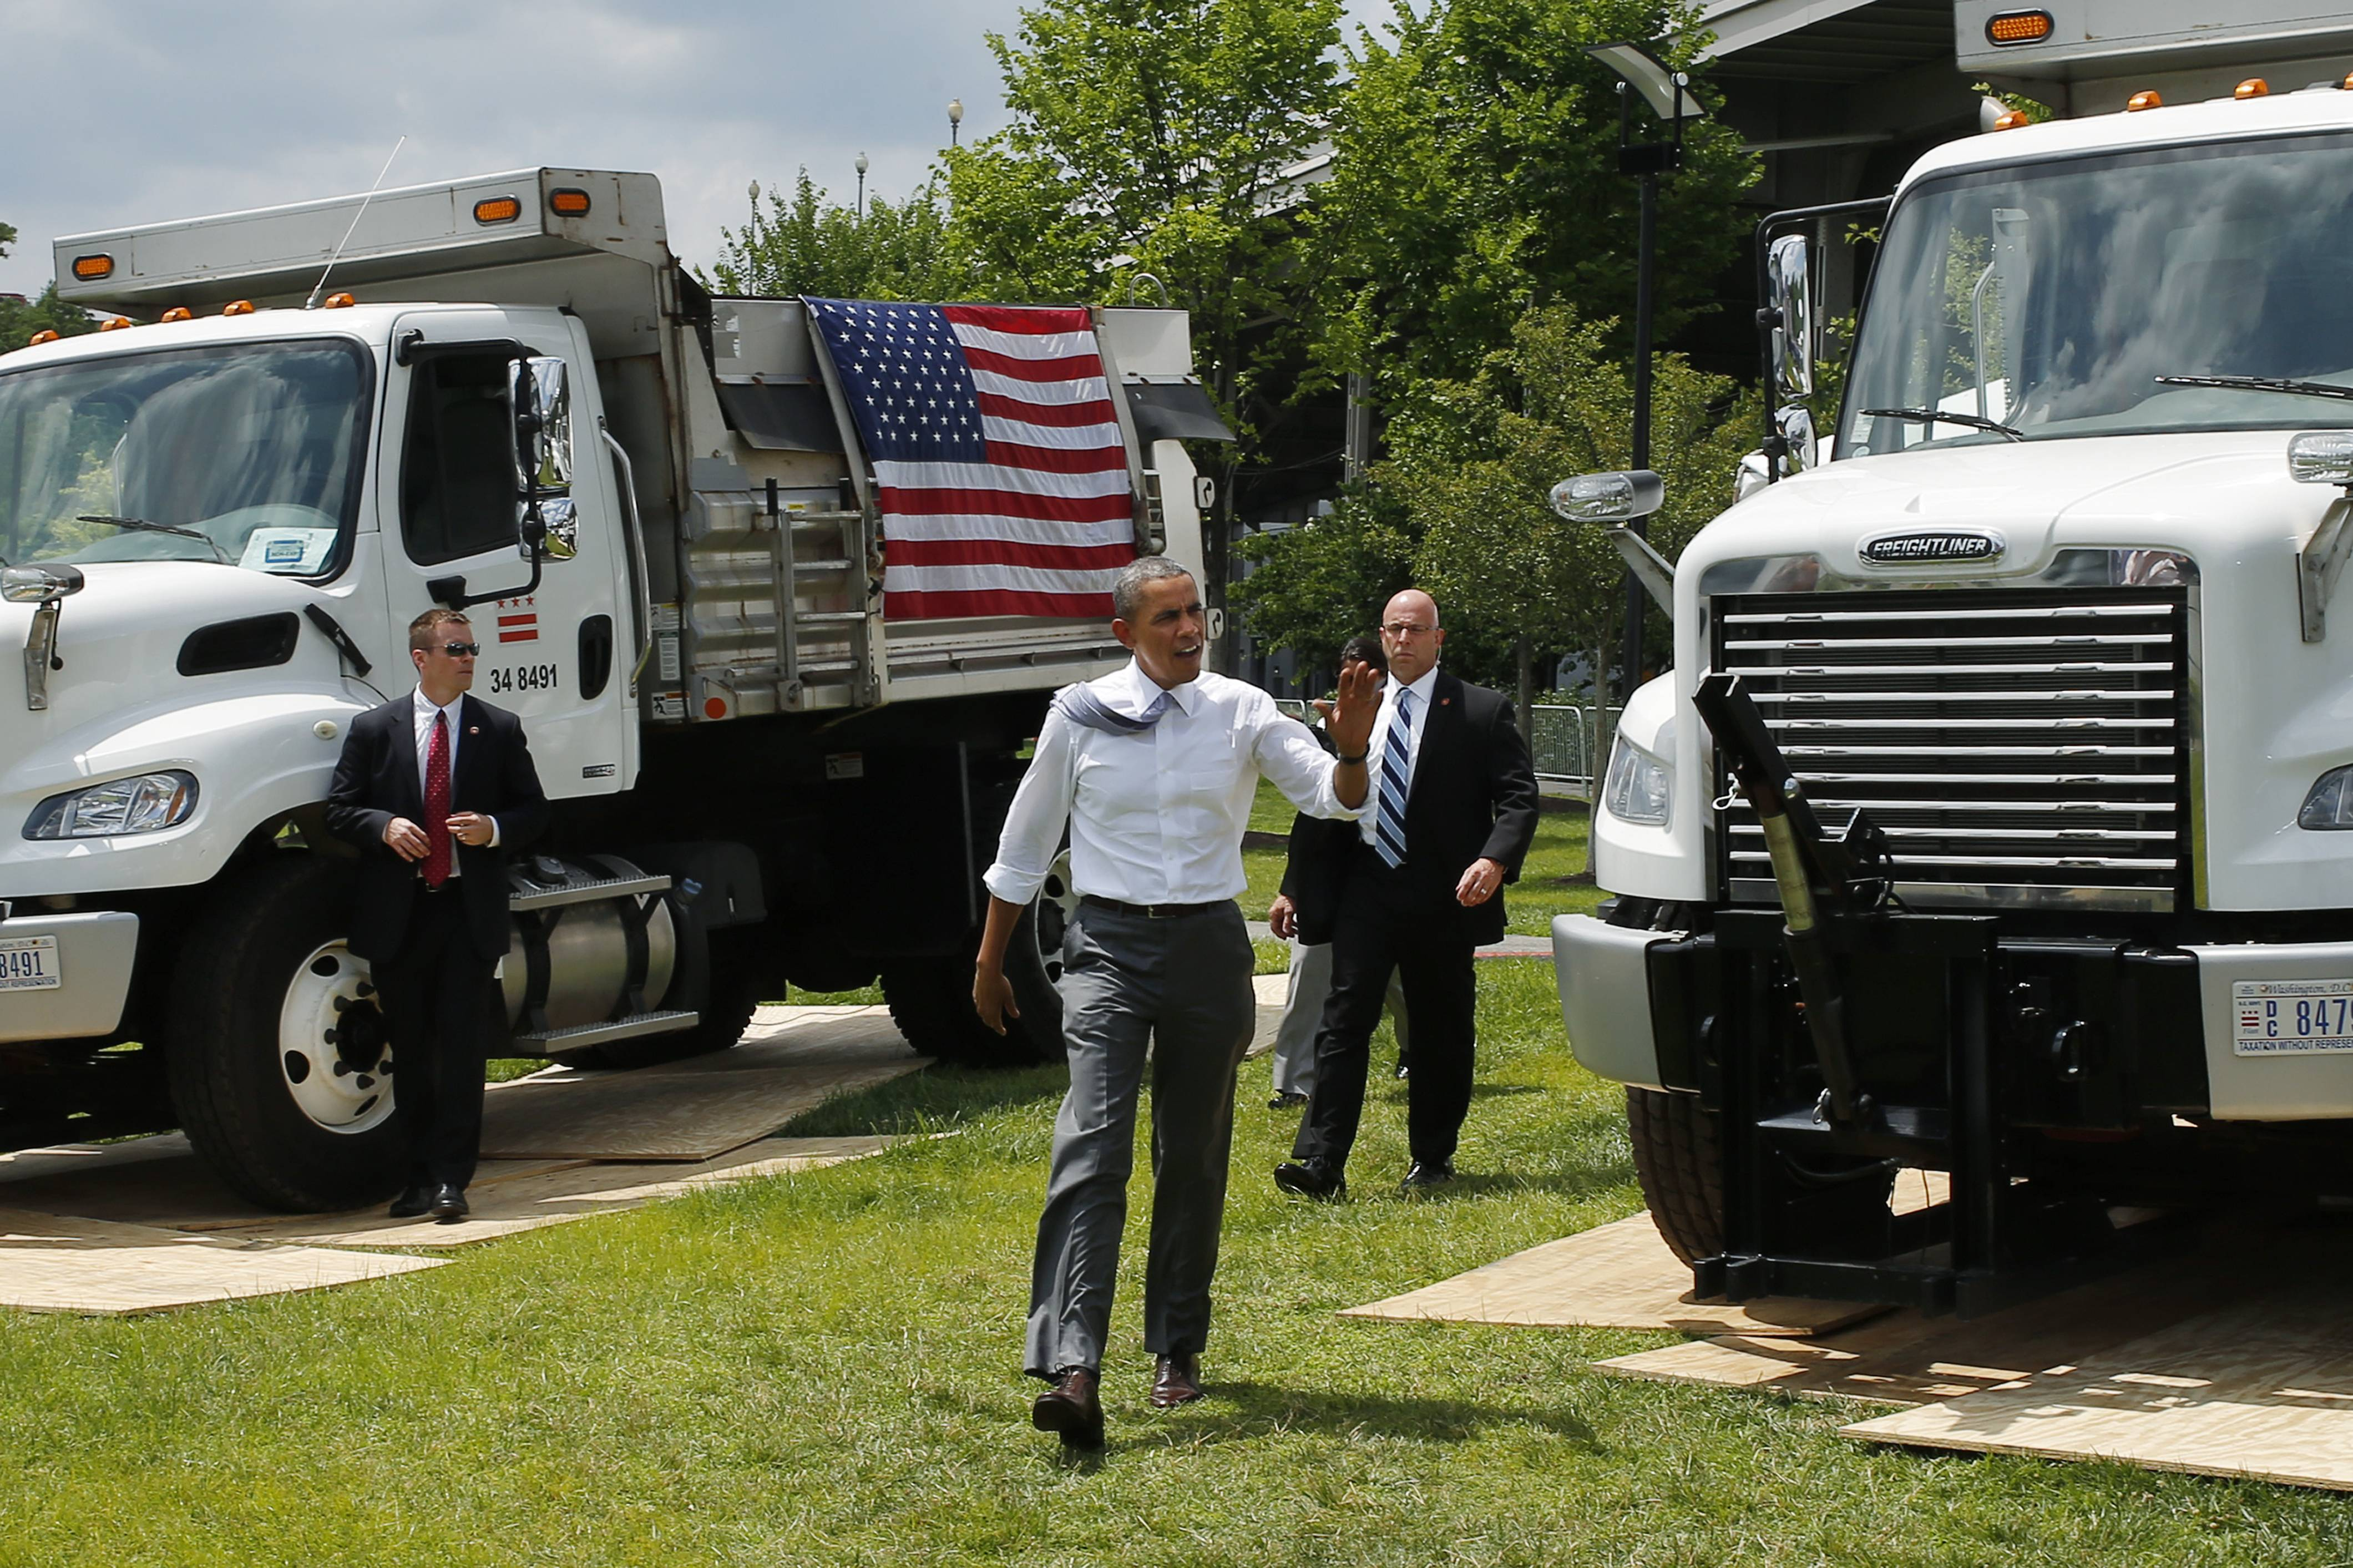 President Barack Obama arrives to speak about transportation and the economy at the Georgetown Waterfront Park in Washington Tuesday. Gridlock in Washington will lead to gridlock across the country if lawmakers can't quickly agree on how to pay for transportation programs, Obama administration officials warn. States will begin to feel the pain of cutbacks within weeks -- peak summer driving time.